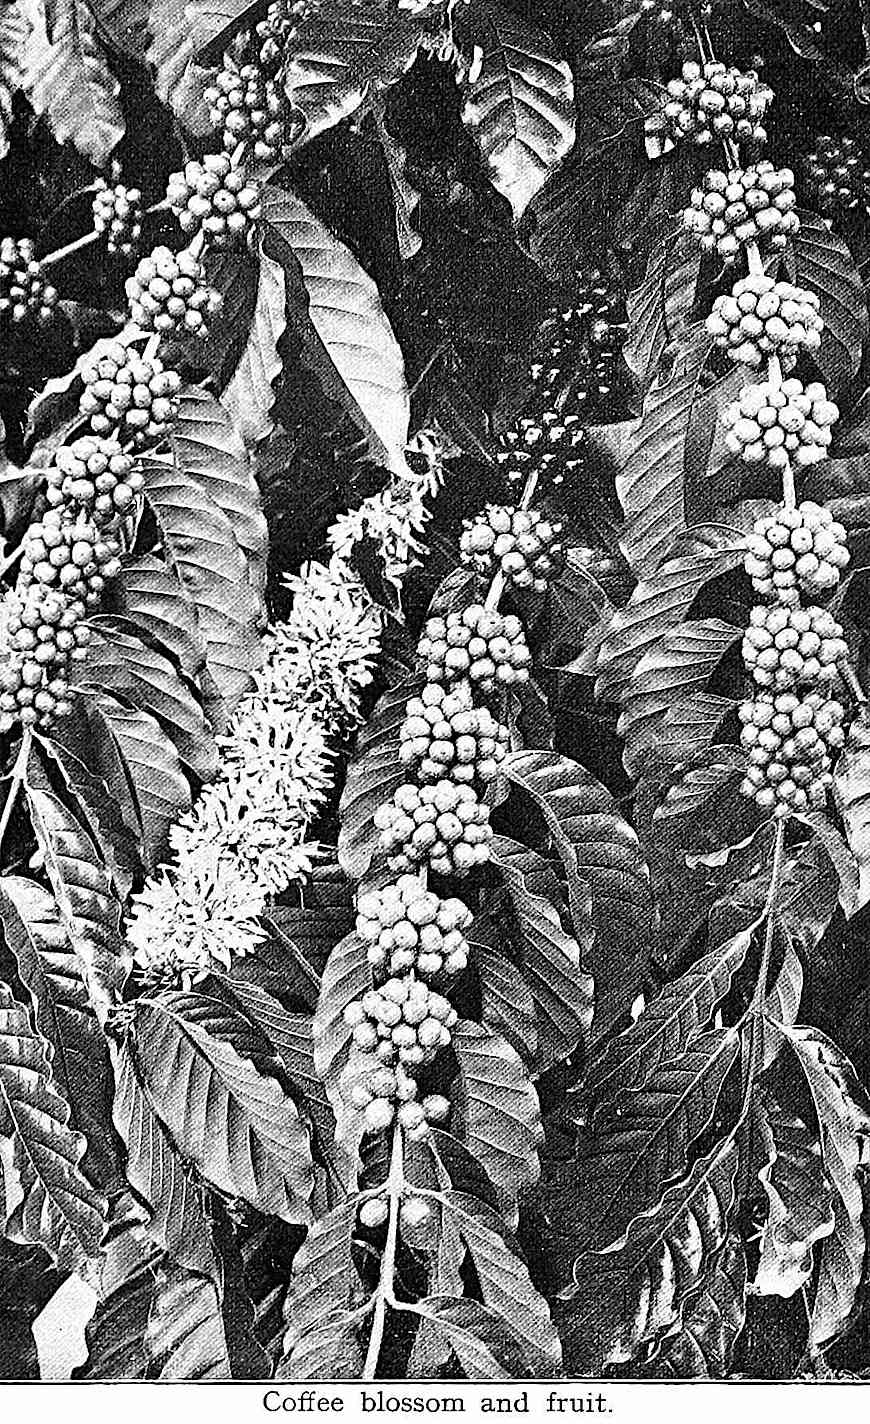 Coffee blossom and fruit, a 1922 photograph